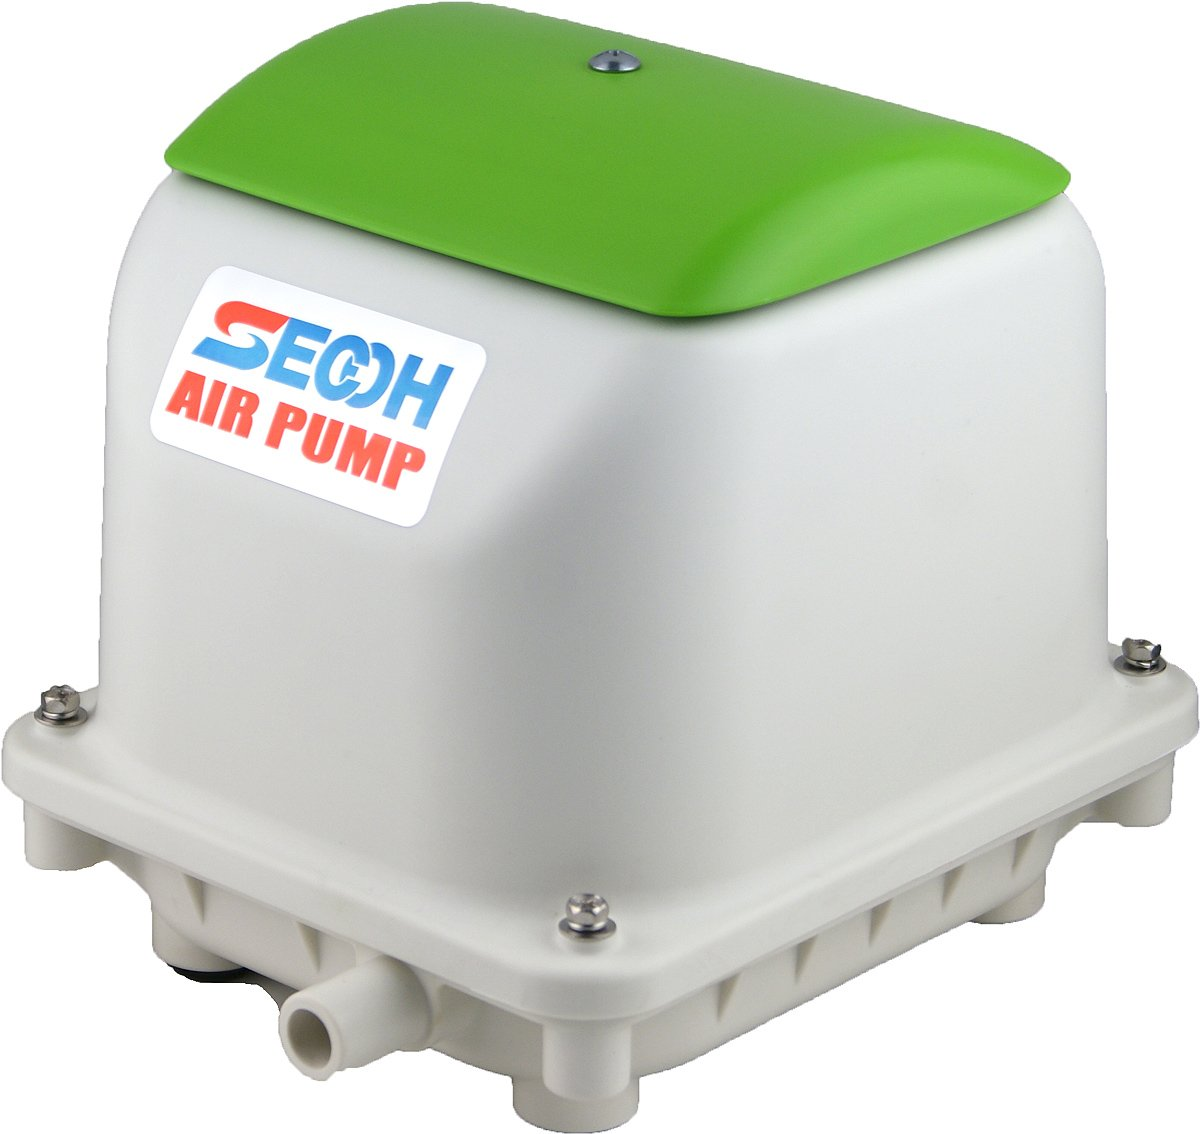 Secoh JDK-80 Septic air pump aerator 2 year warraty